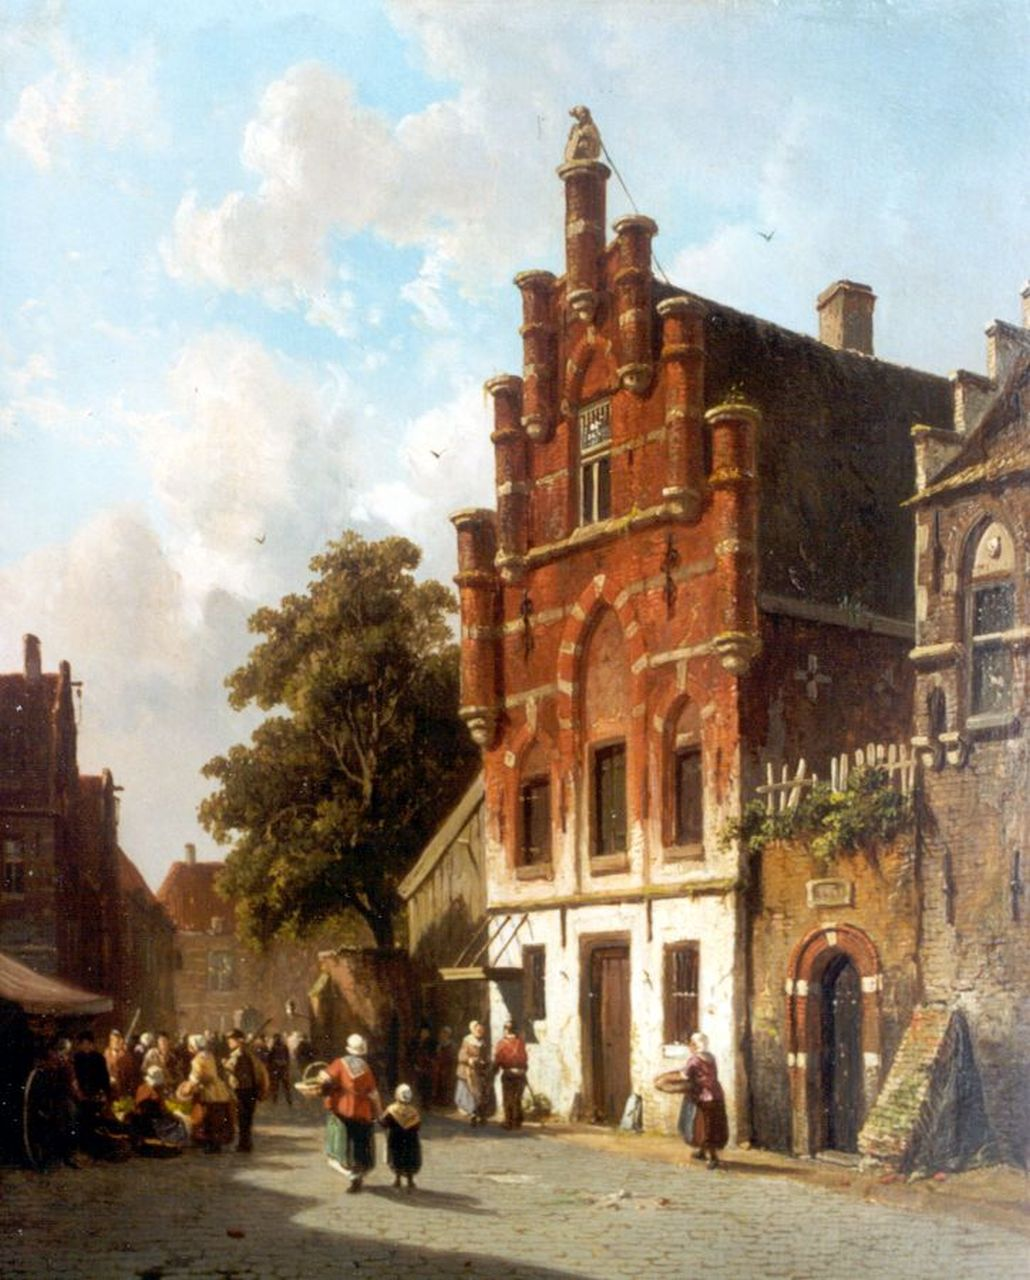 Eversen A.  | Adrianus Eversen, Market day, oil on panel 34.0 x 27.0 cm, signed l.r. and dated 1843 (indistinctly)